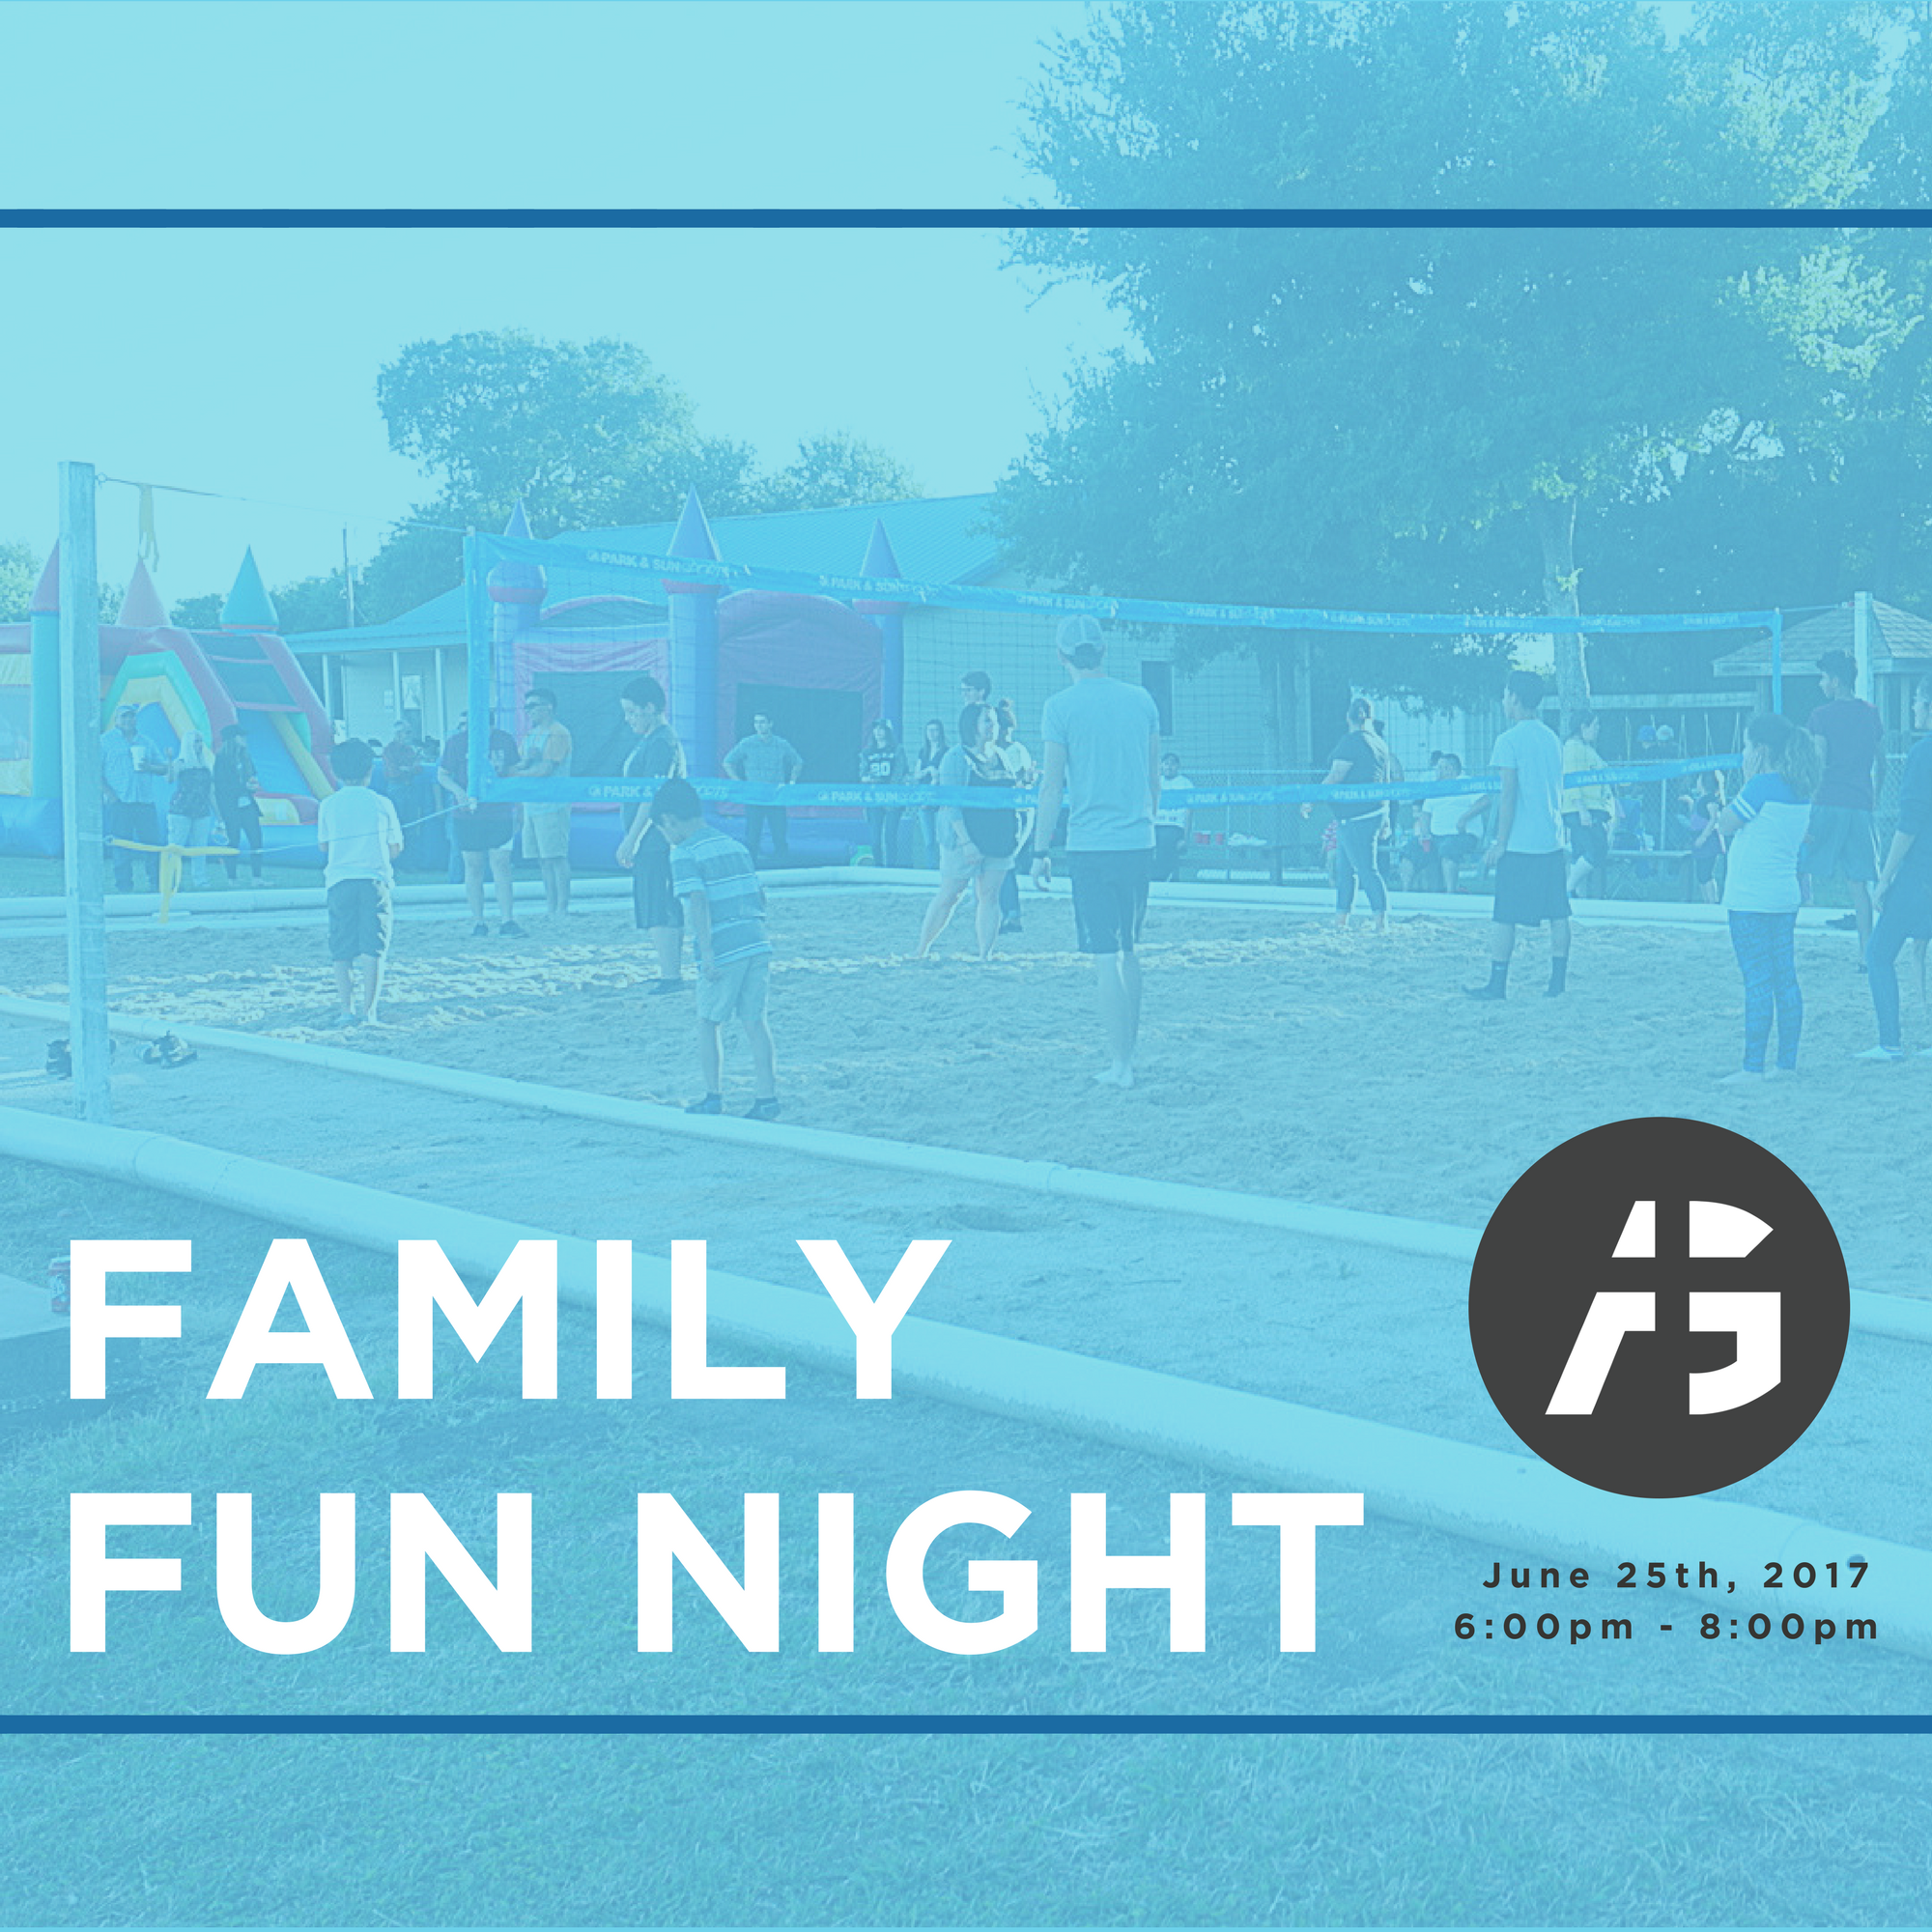 Copy of facebook event family funnight.png